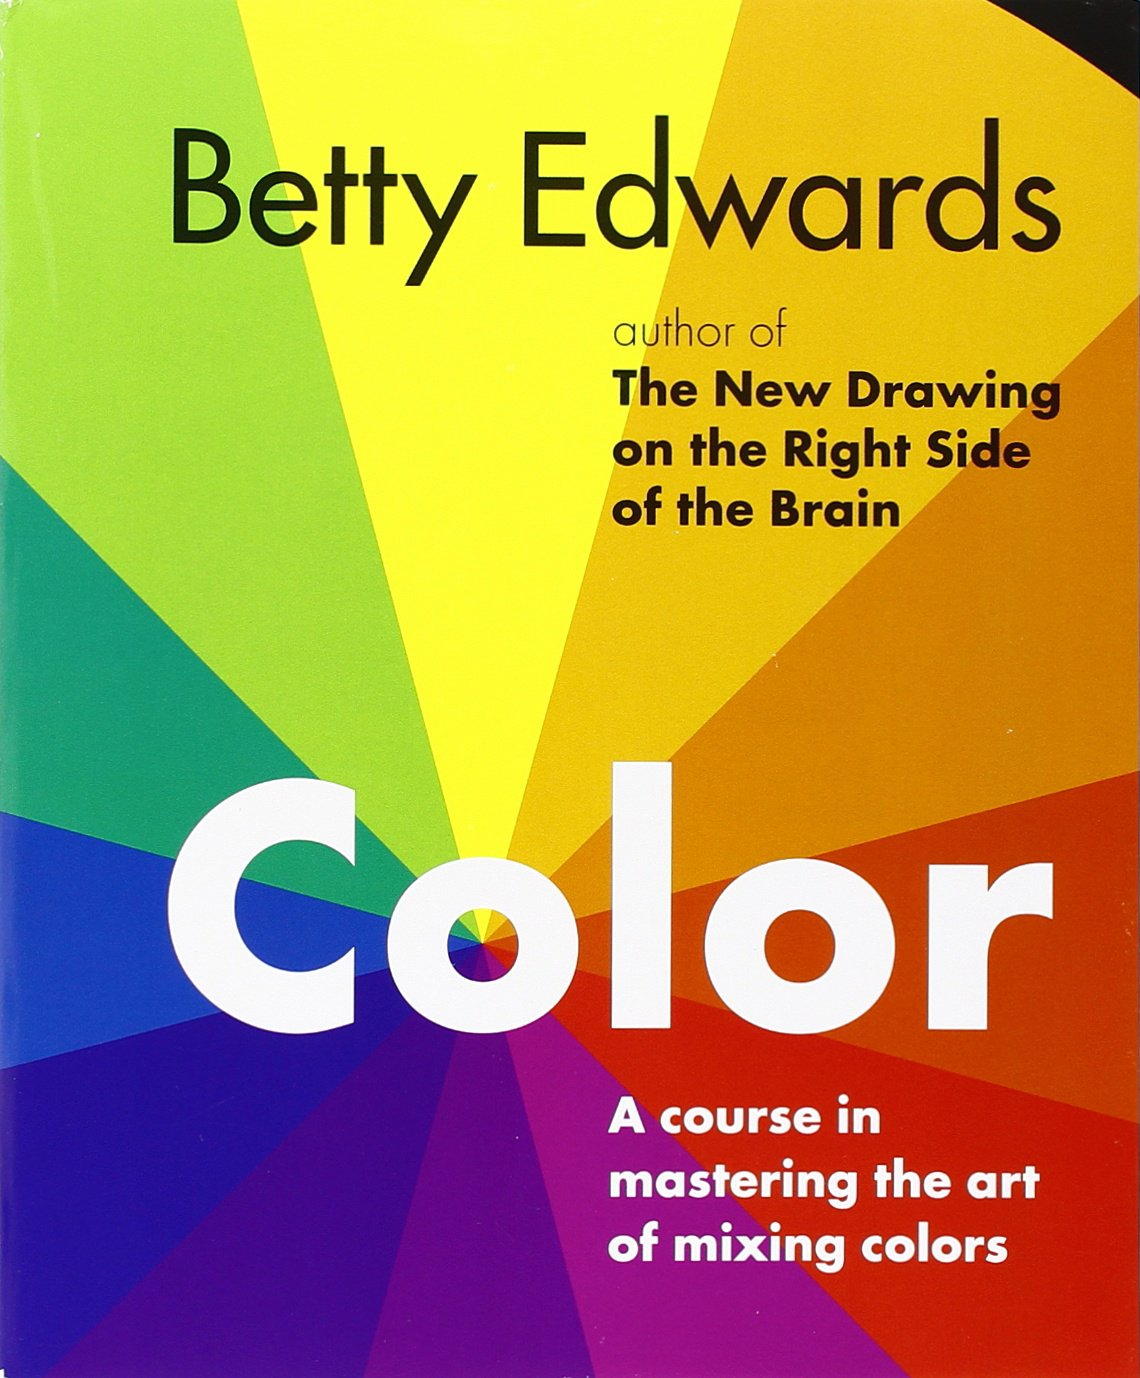 Delighted Color By Number Books For Adults Huge Minnie Mouse Coloring Book Rectangular Glassjaw Coloring Book Sesame Street Coloring Books Young Marvel Coloring Book OrangeMunsell Color Book Color By Betty Edwards: A Course In Mastering The Art Of Mixing ..